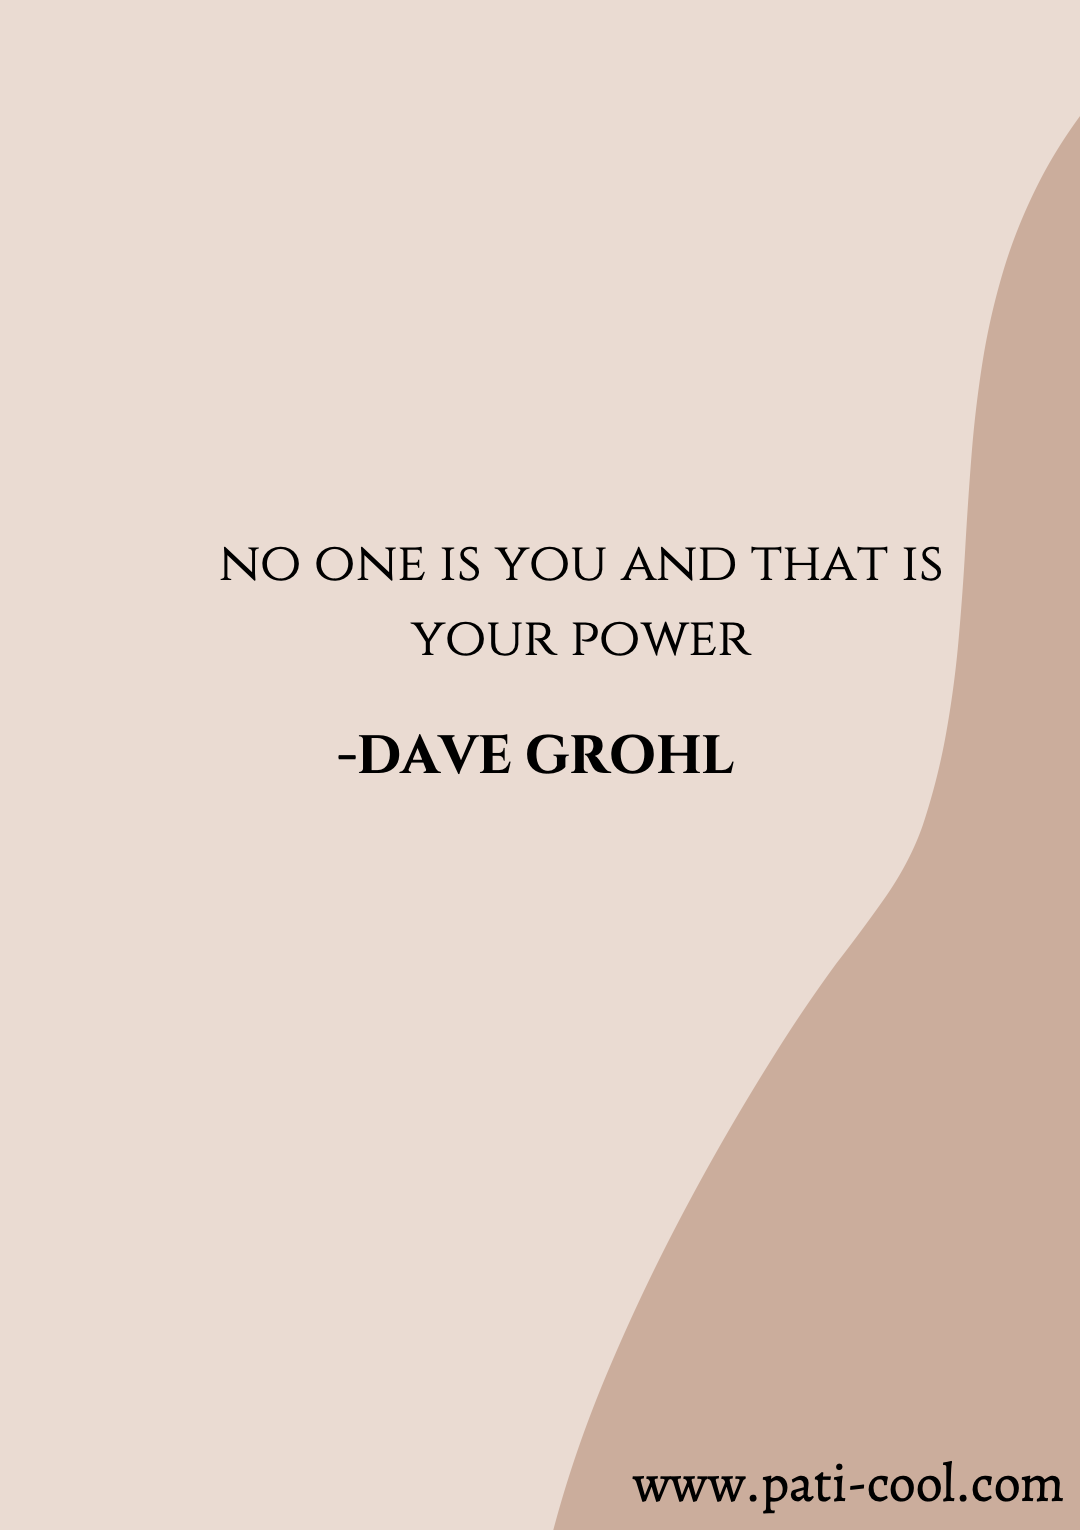 quotes, quote of the day, qotd, David Grohl, Nirvana, musician words